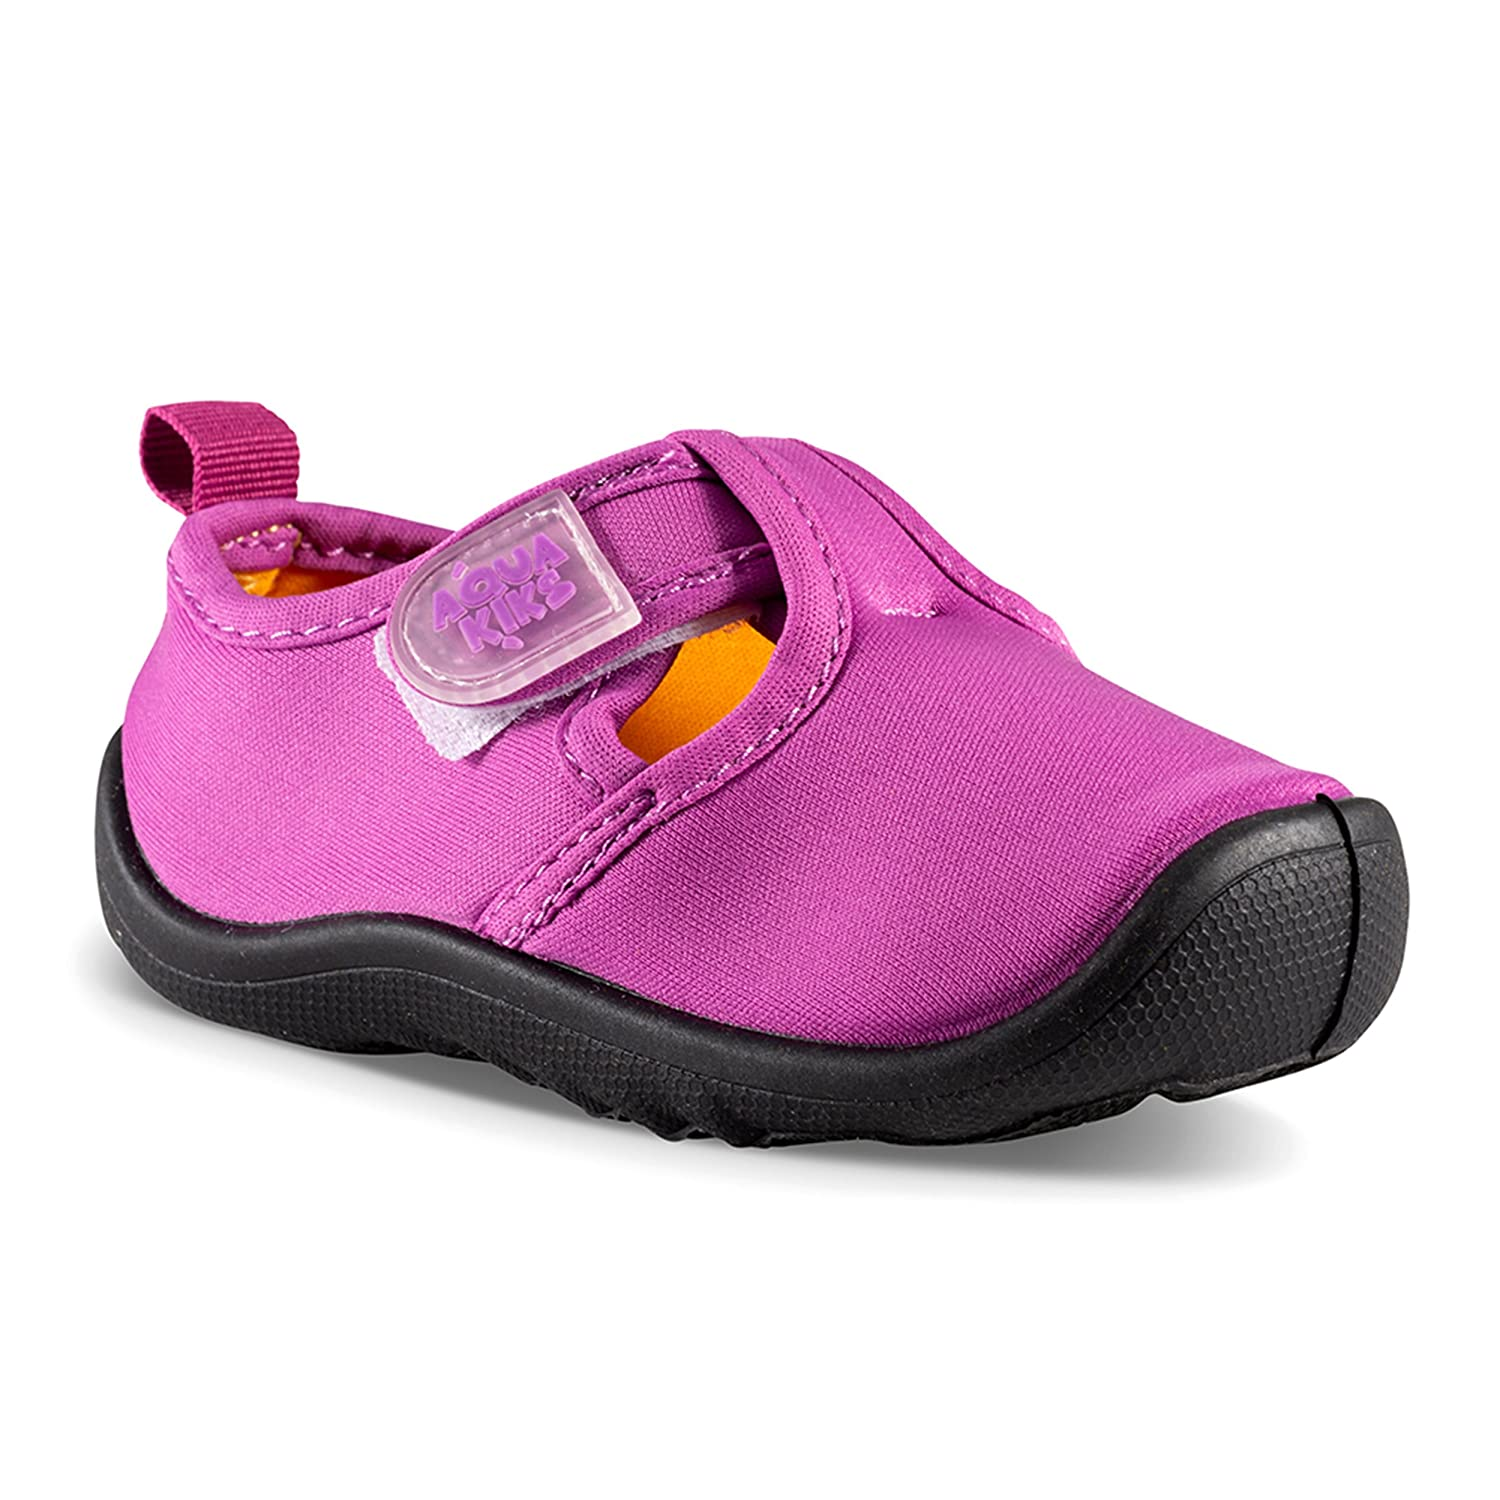 Aqua Shoes for Boys and Girls Aquakiks Water Shoes for Kids and Toddlers